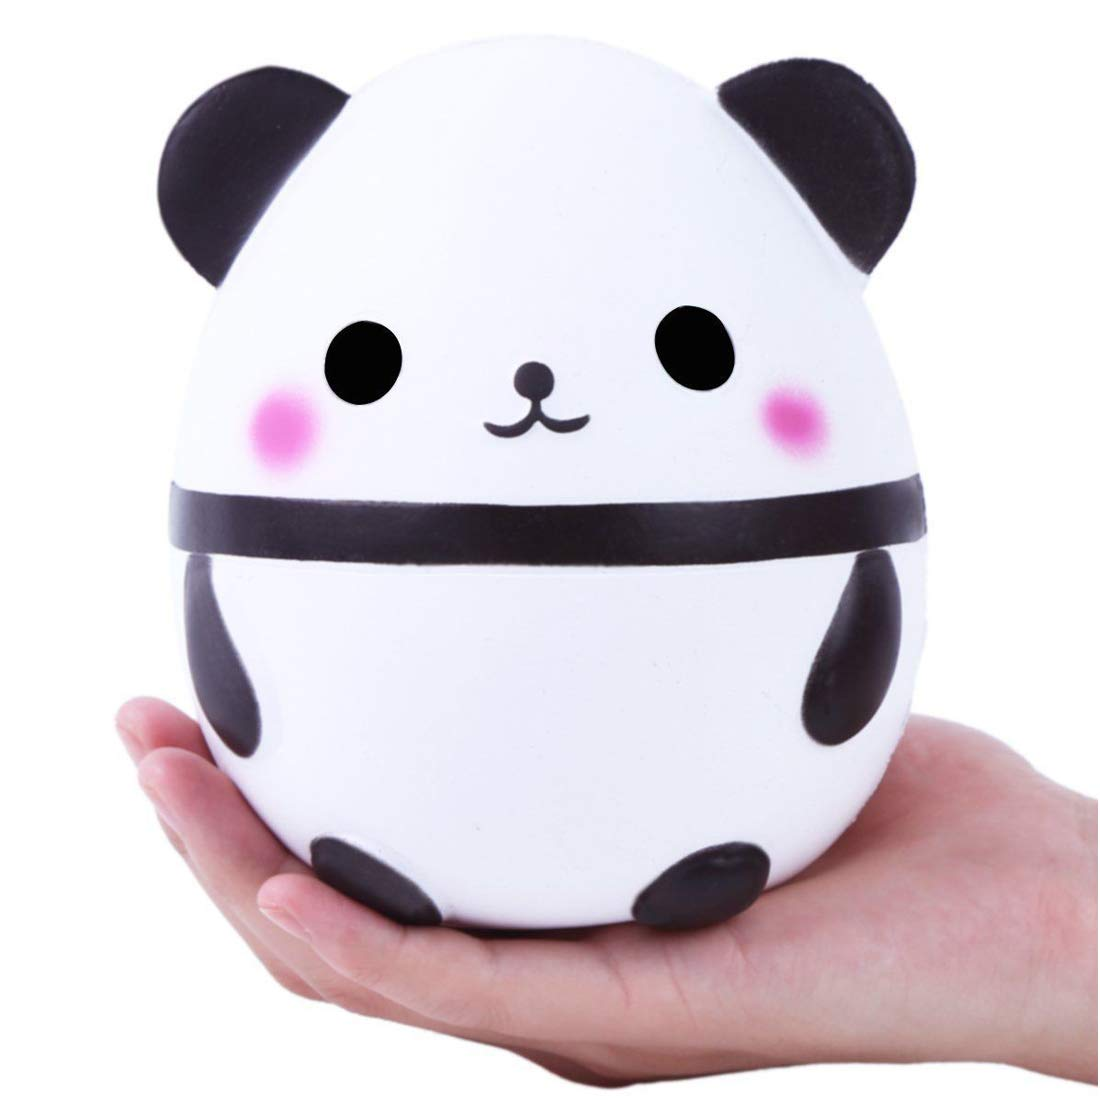 ModFL Squishies Slow Rising Jumbo Panda Squishy Cream Scented Squishies Toys for Kids and Adults Stress Relief Toy Hop Props